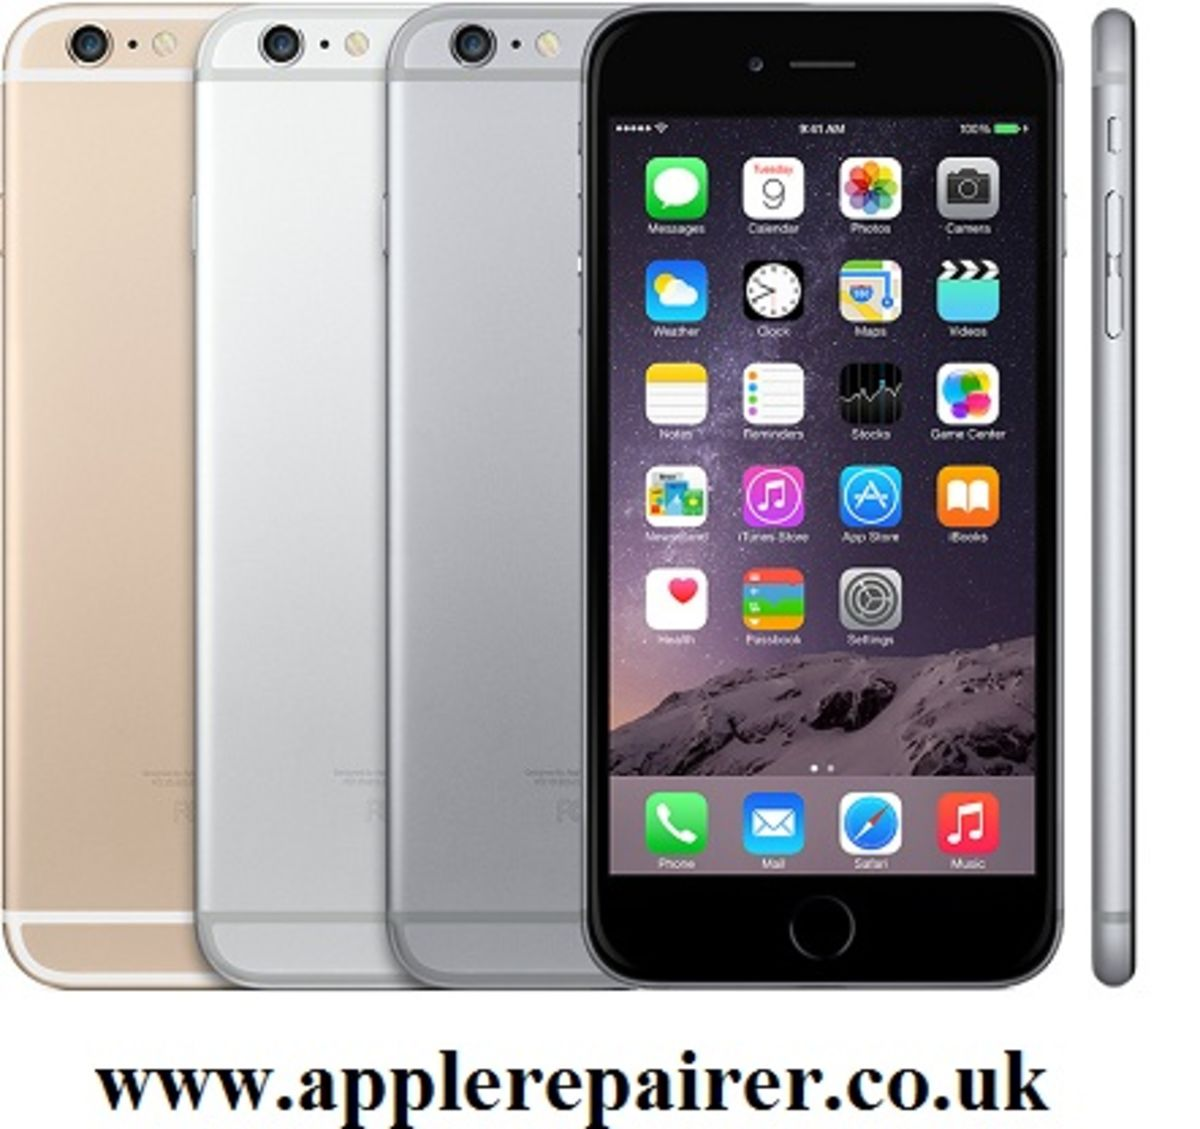 Headline for iPhone Repair Leeds | www.applerepairer.co.uk